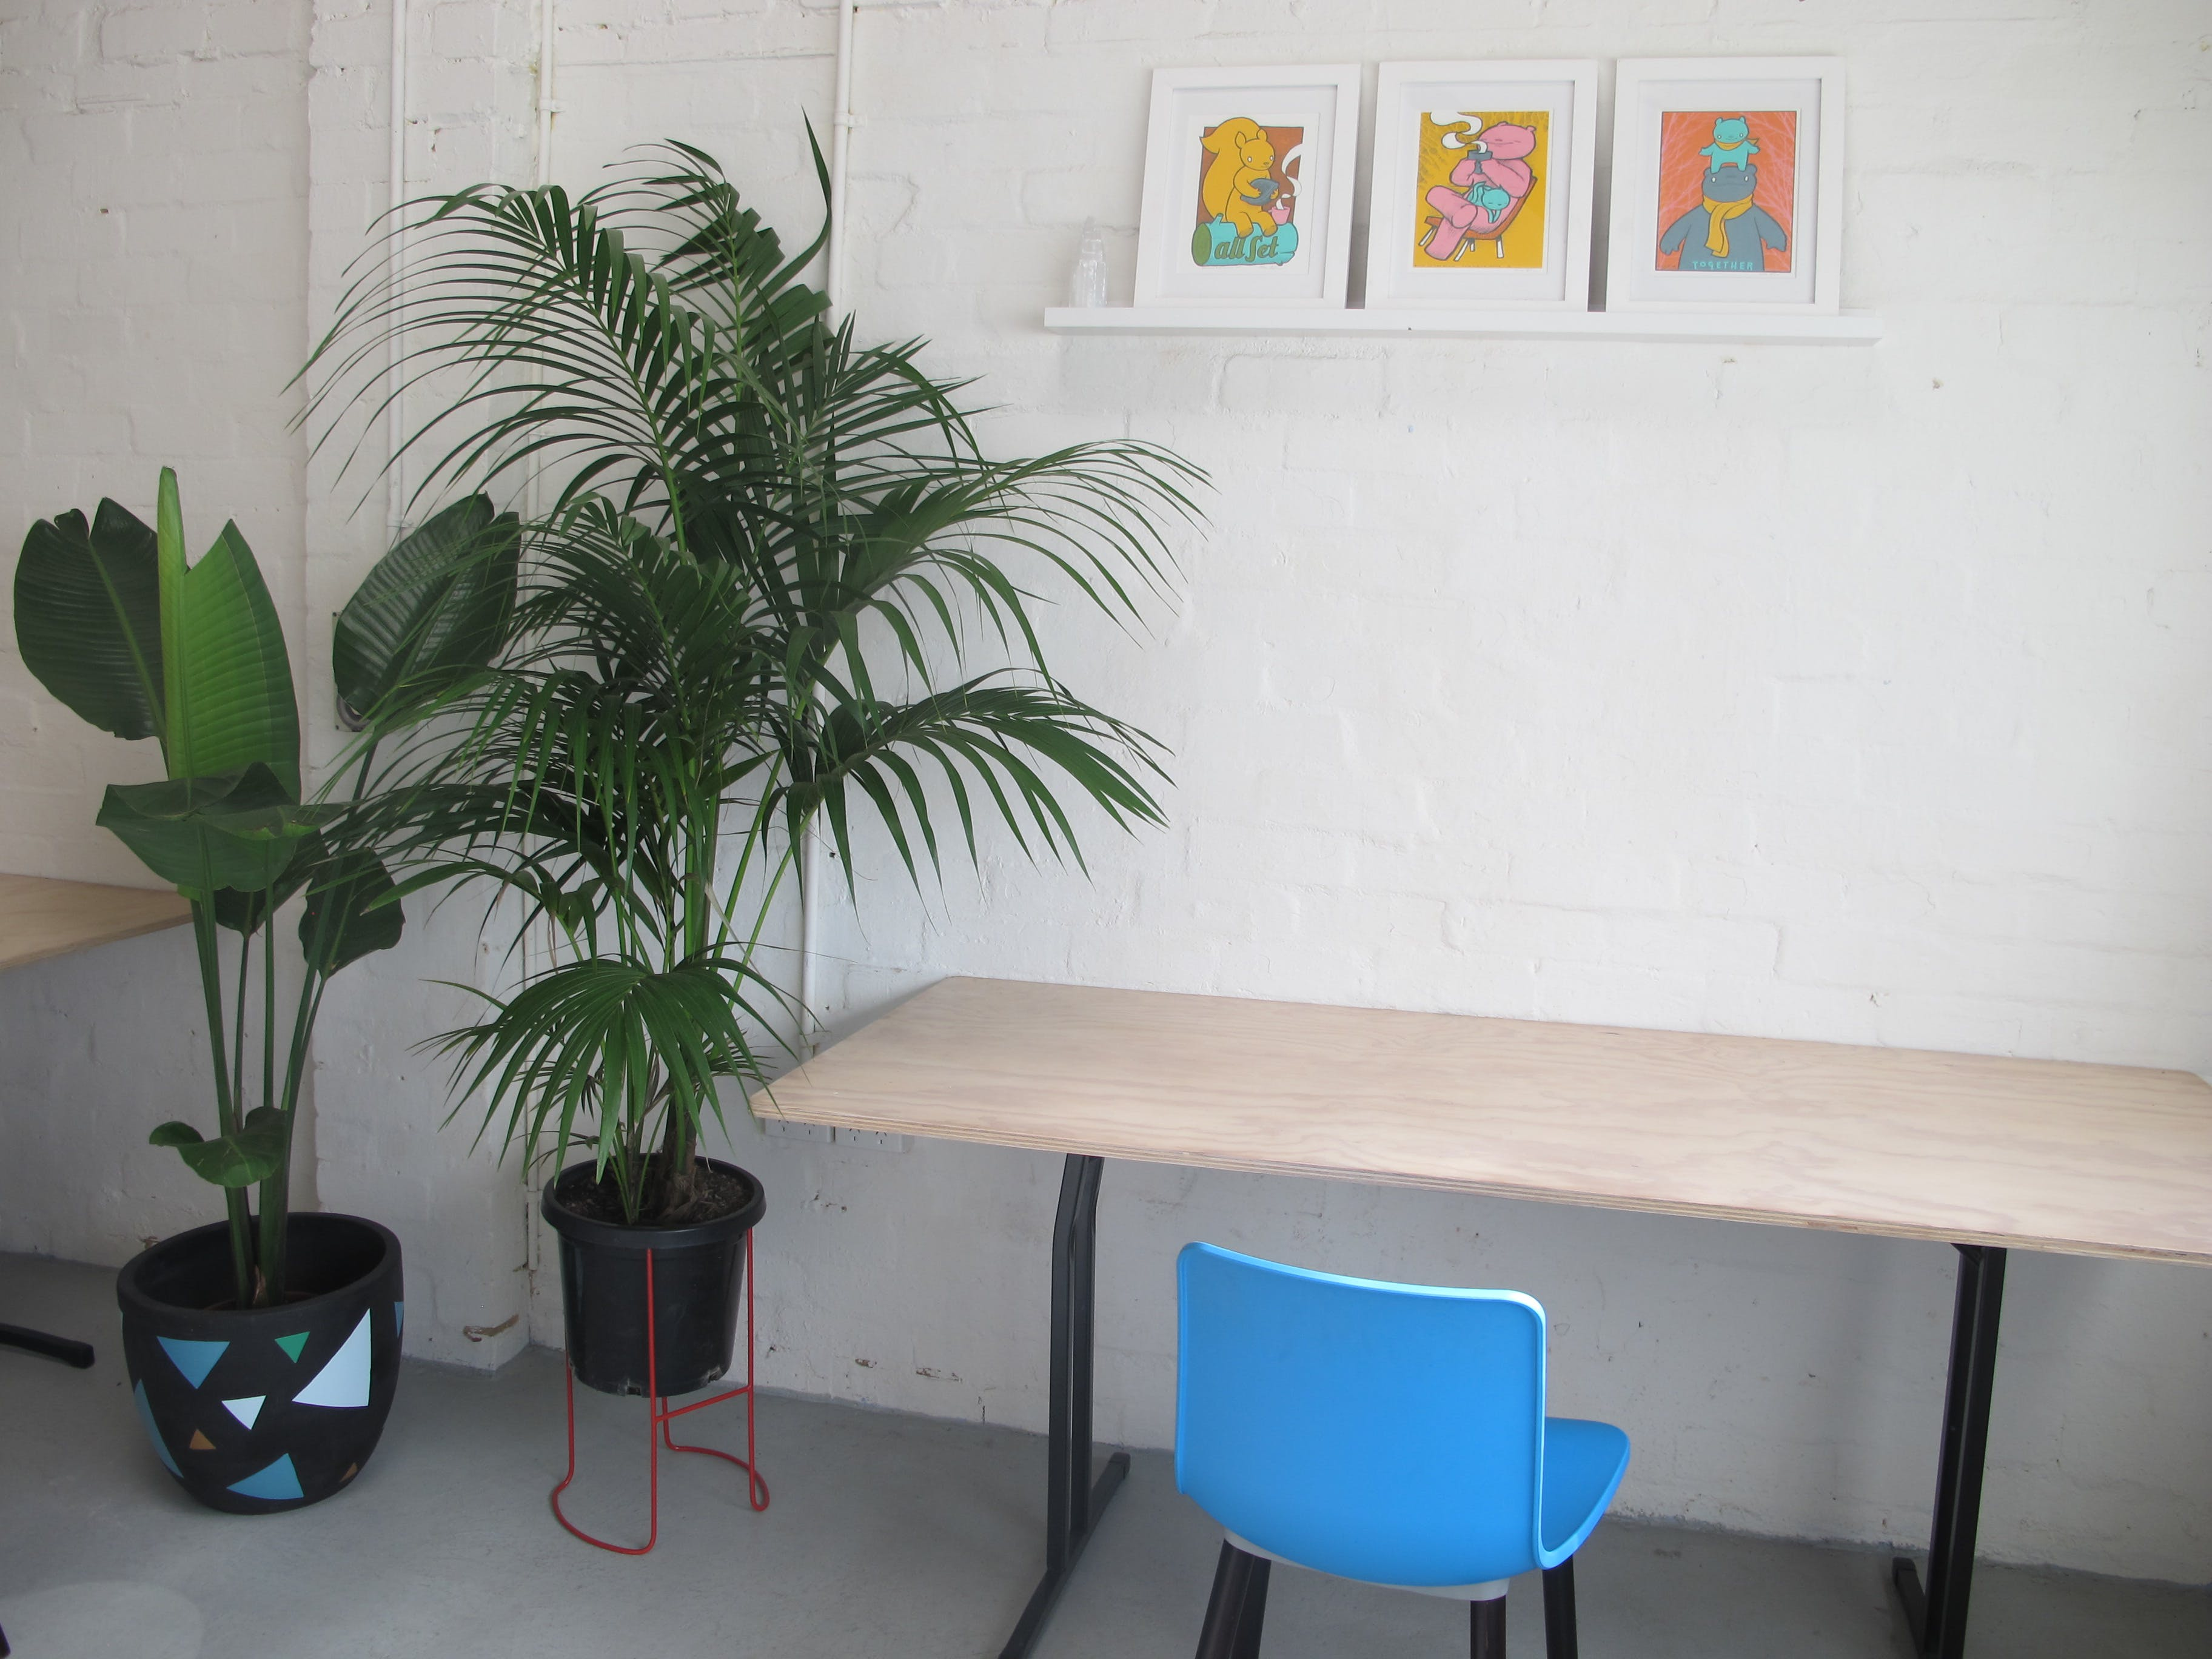 Workshop at The Cowork Co, image 2